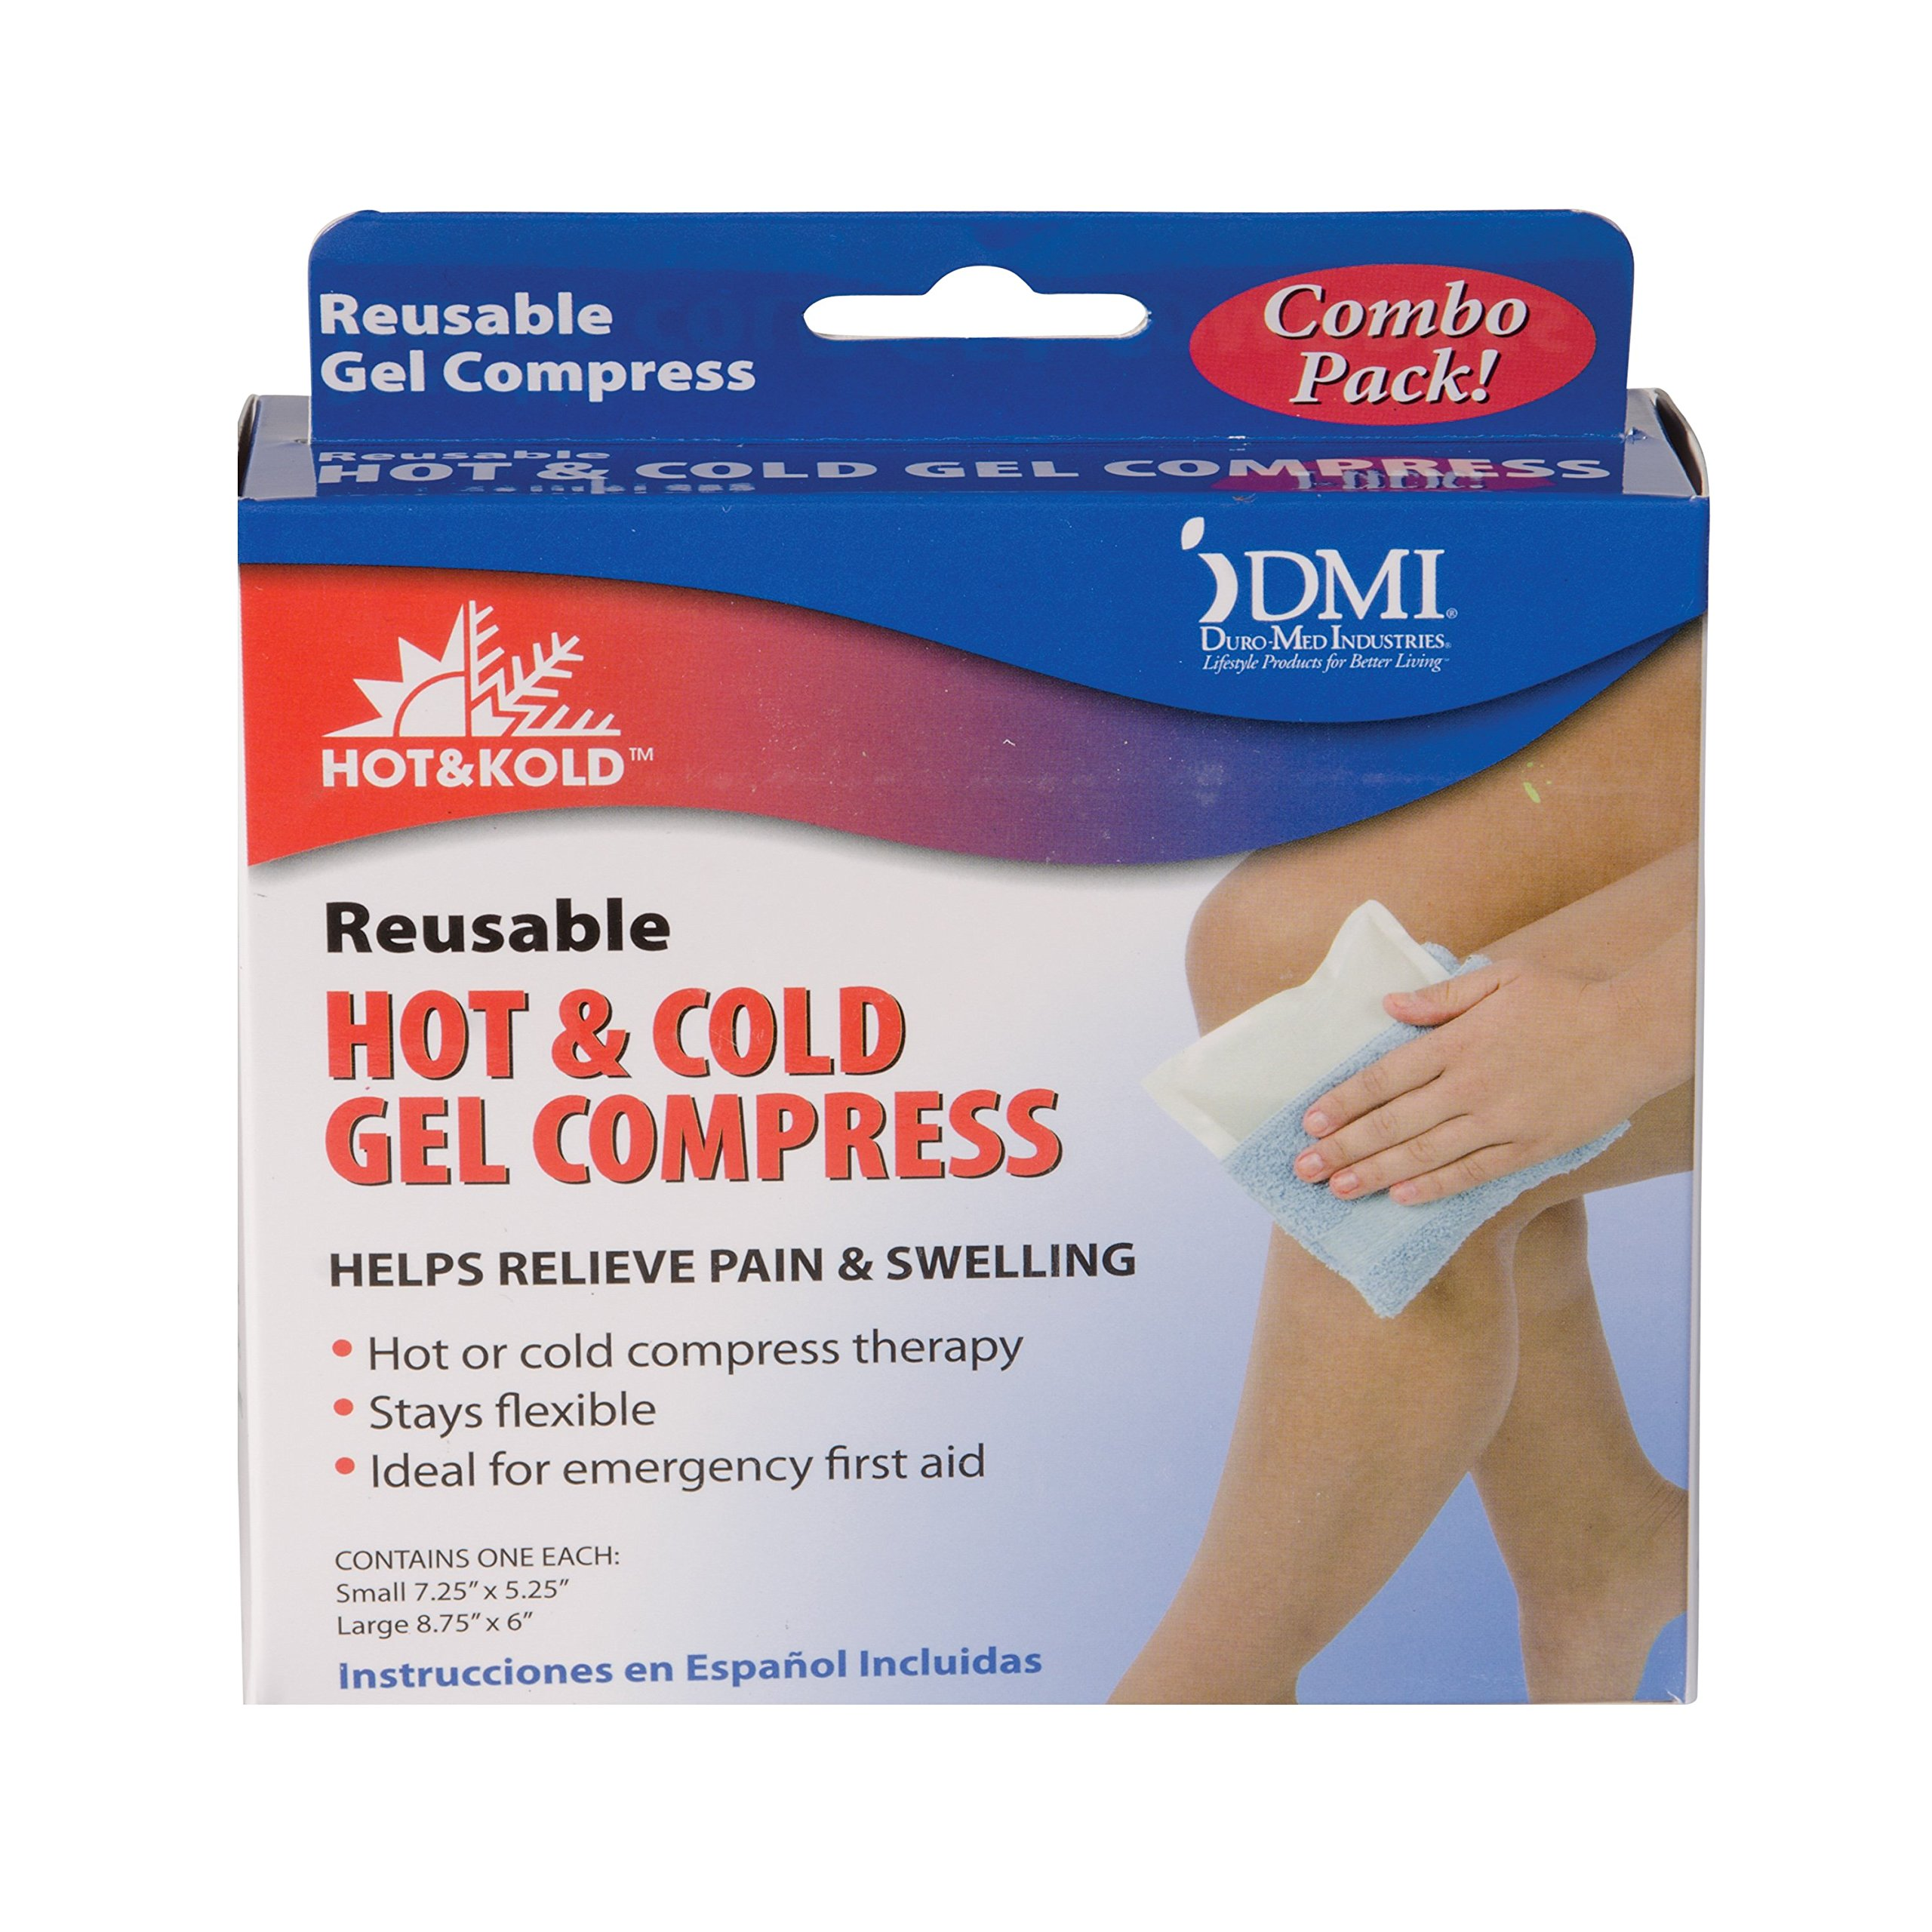 Mabis Dmi Healthcare Dmi Hot & Kold- Hot and Cold Gel Compress, Reusable and Flexible, Mircrowave for Heat, Freeze for Cold, 1 Small, 1 Large by MABIS DMI Healthcare